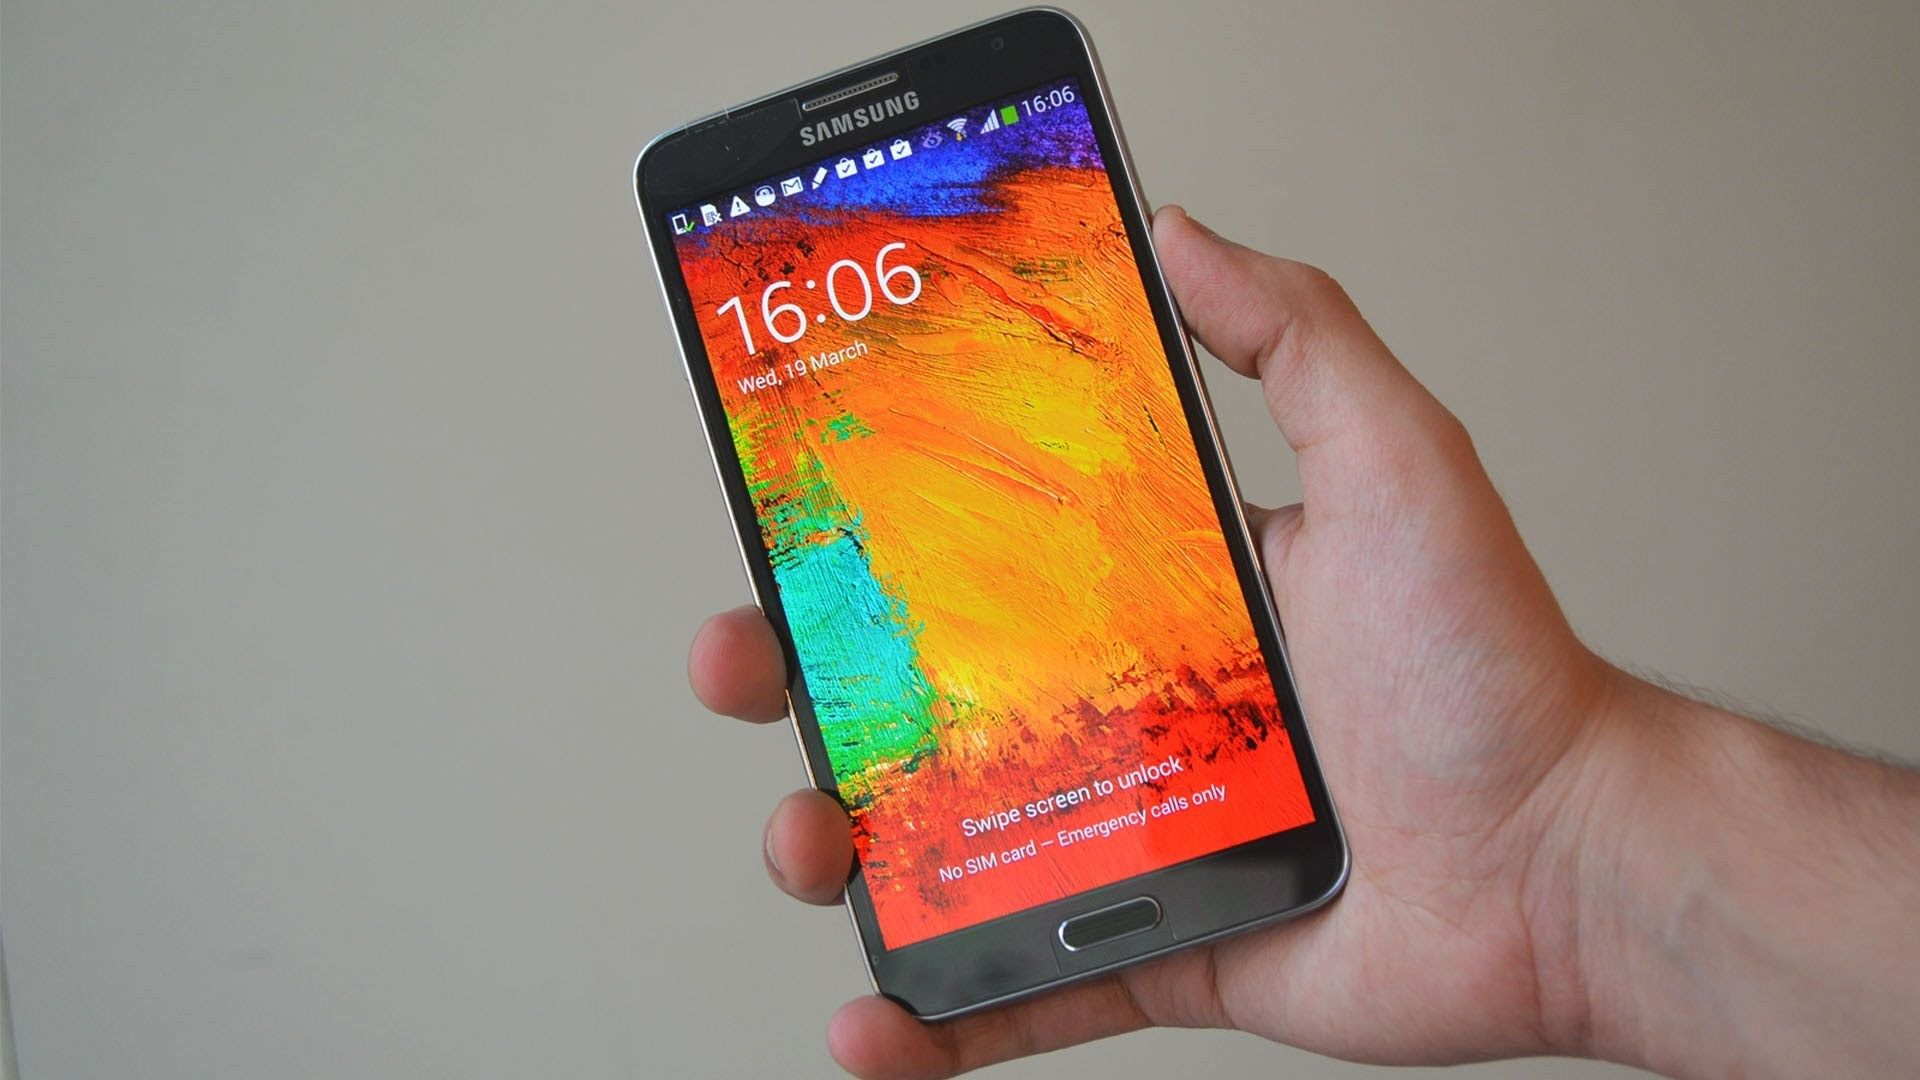 Stock Firmware on Samsung GALAXY Note3 Lite 4G SM-N7506V In this